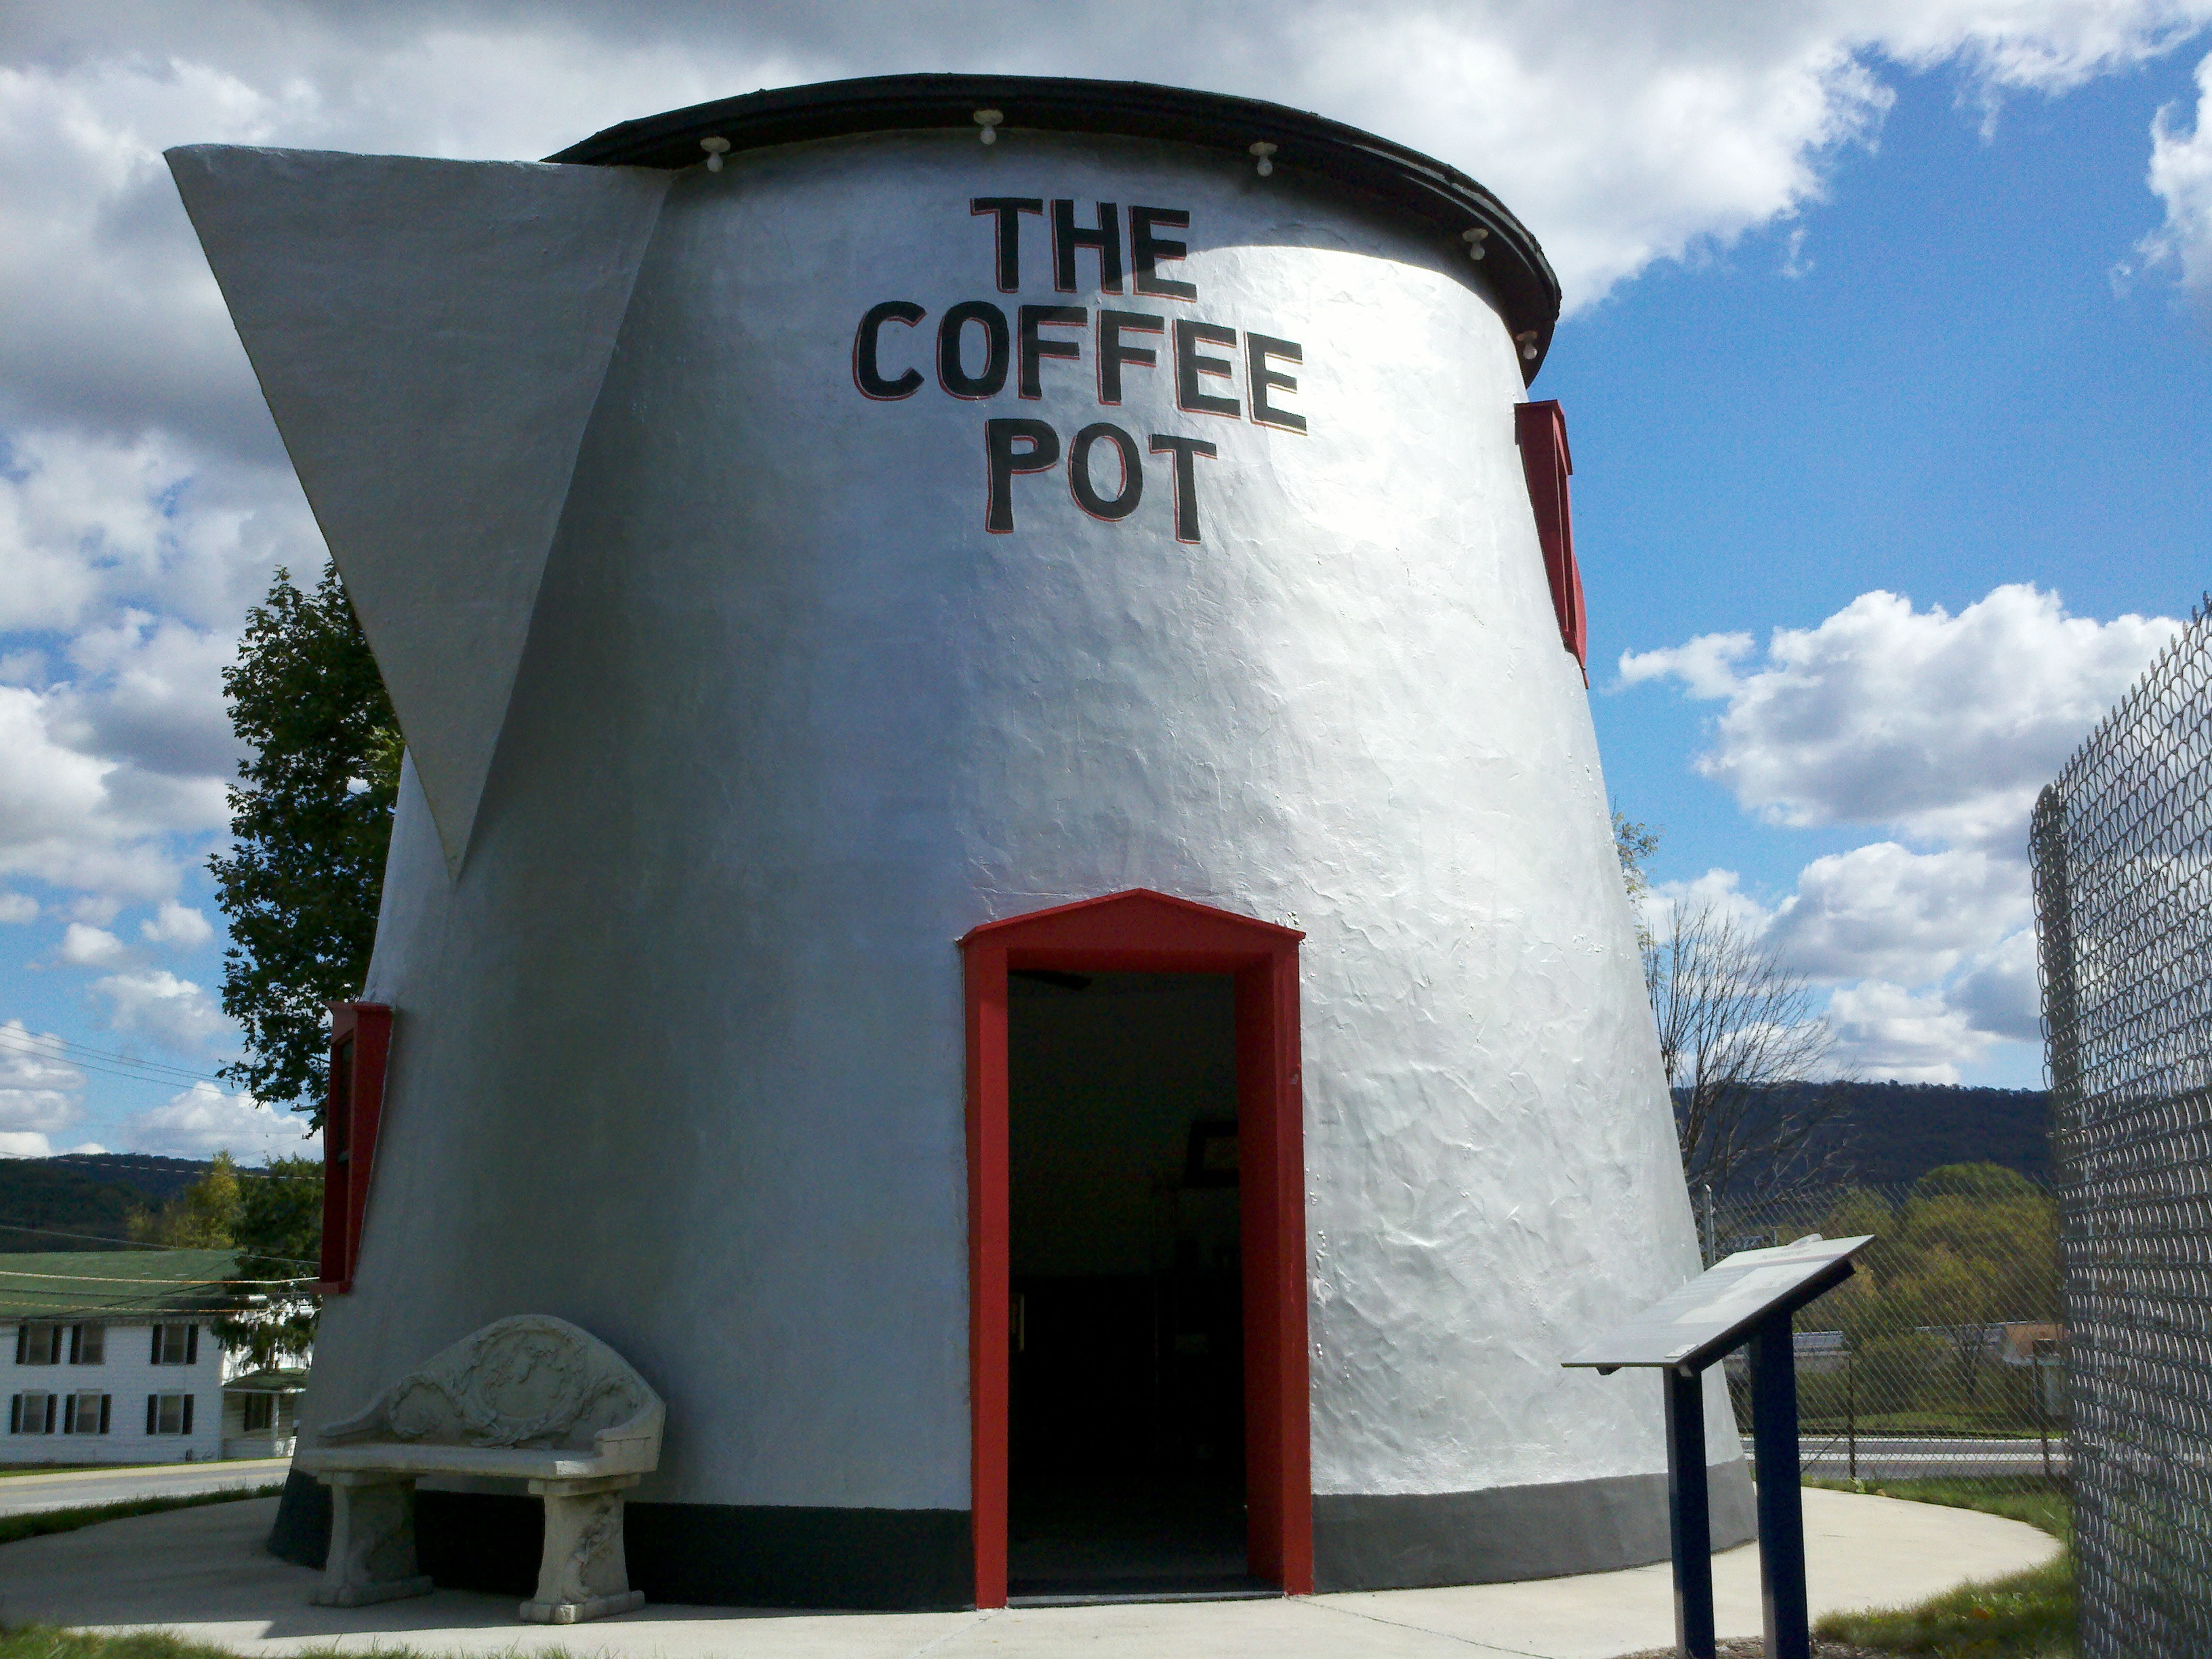 The restored Bedford Coffee Pot